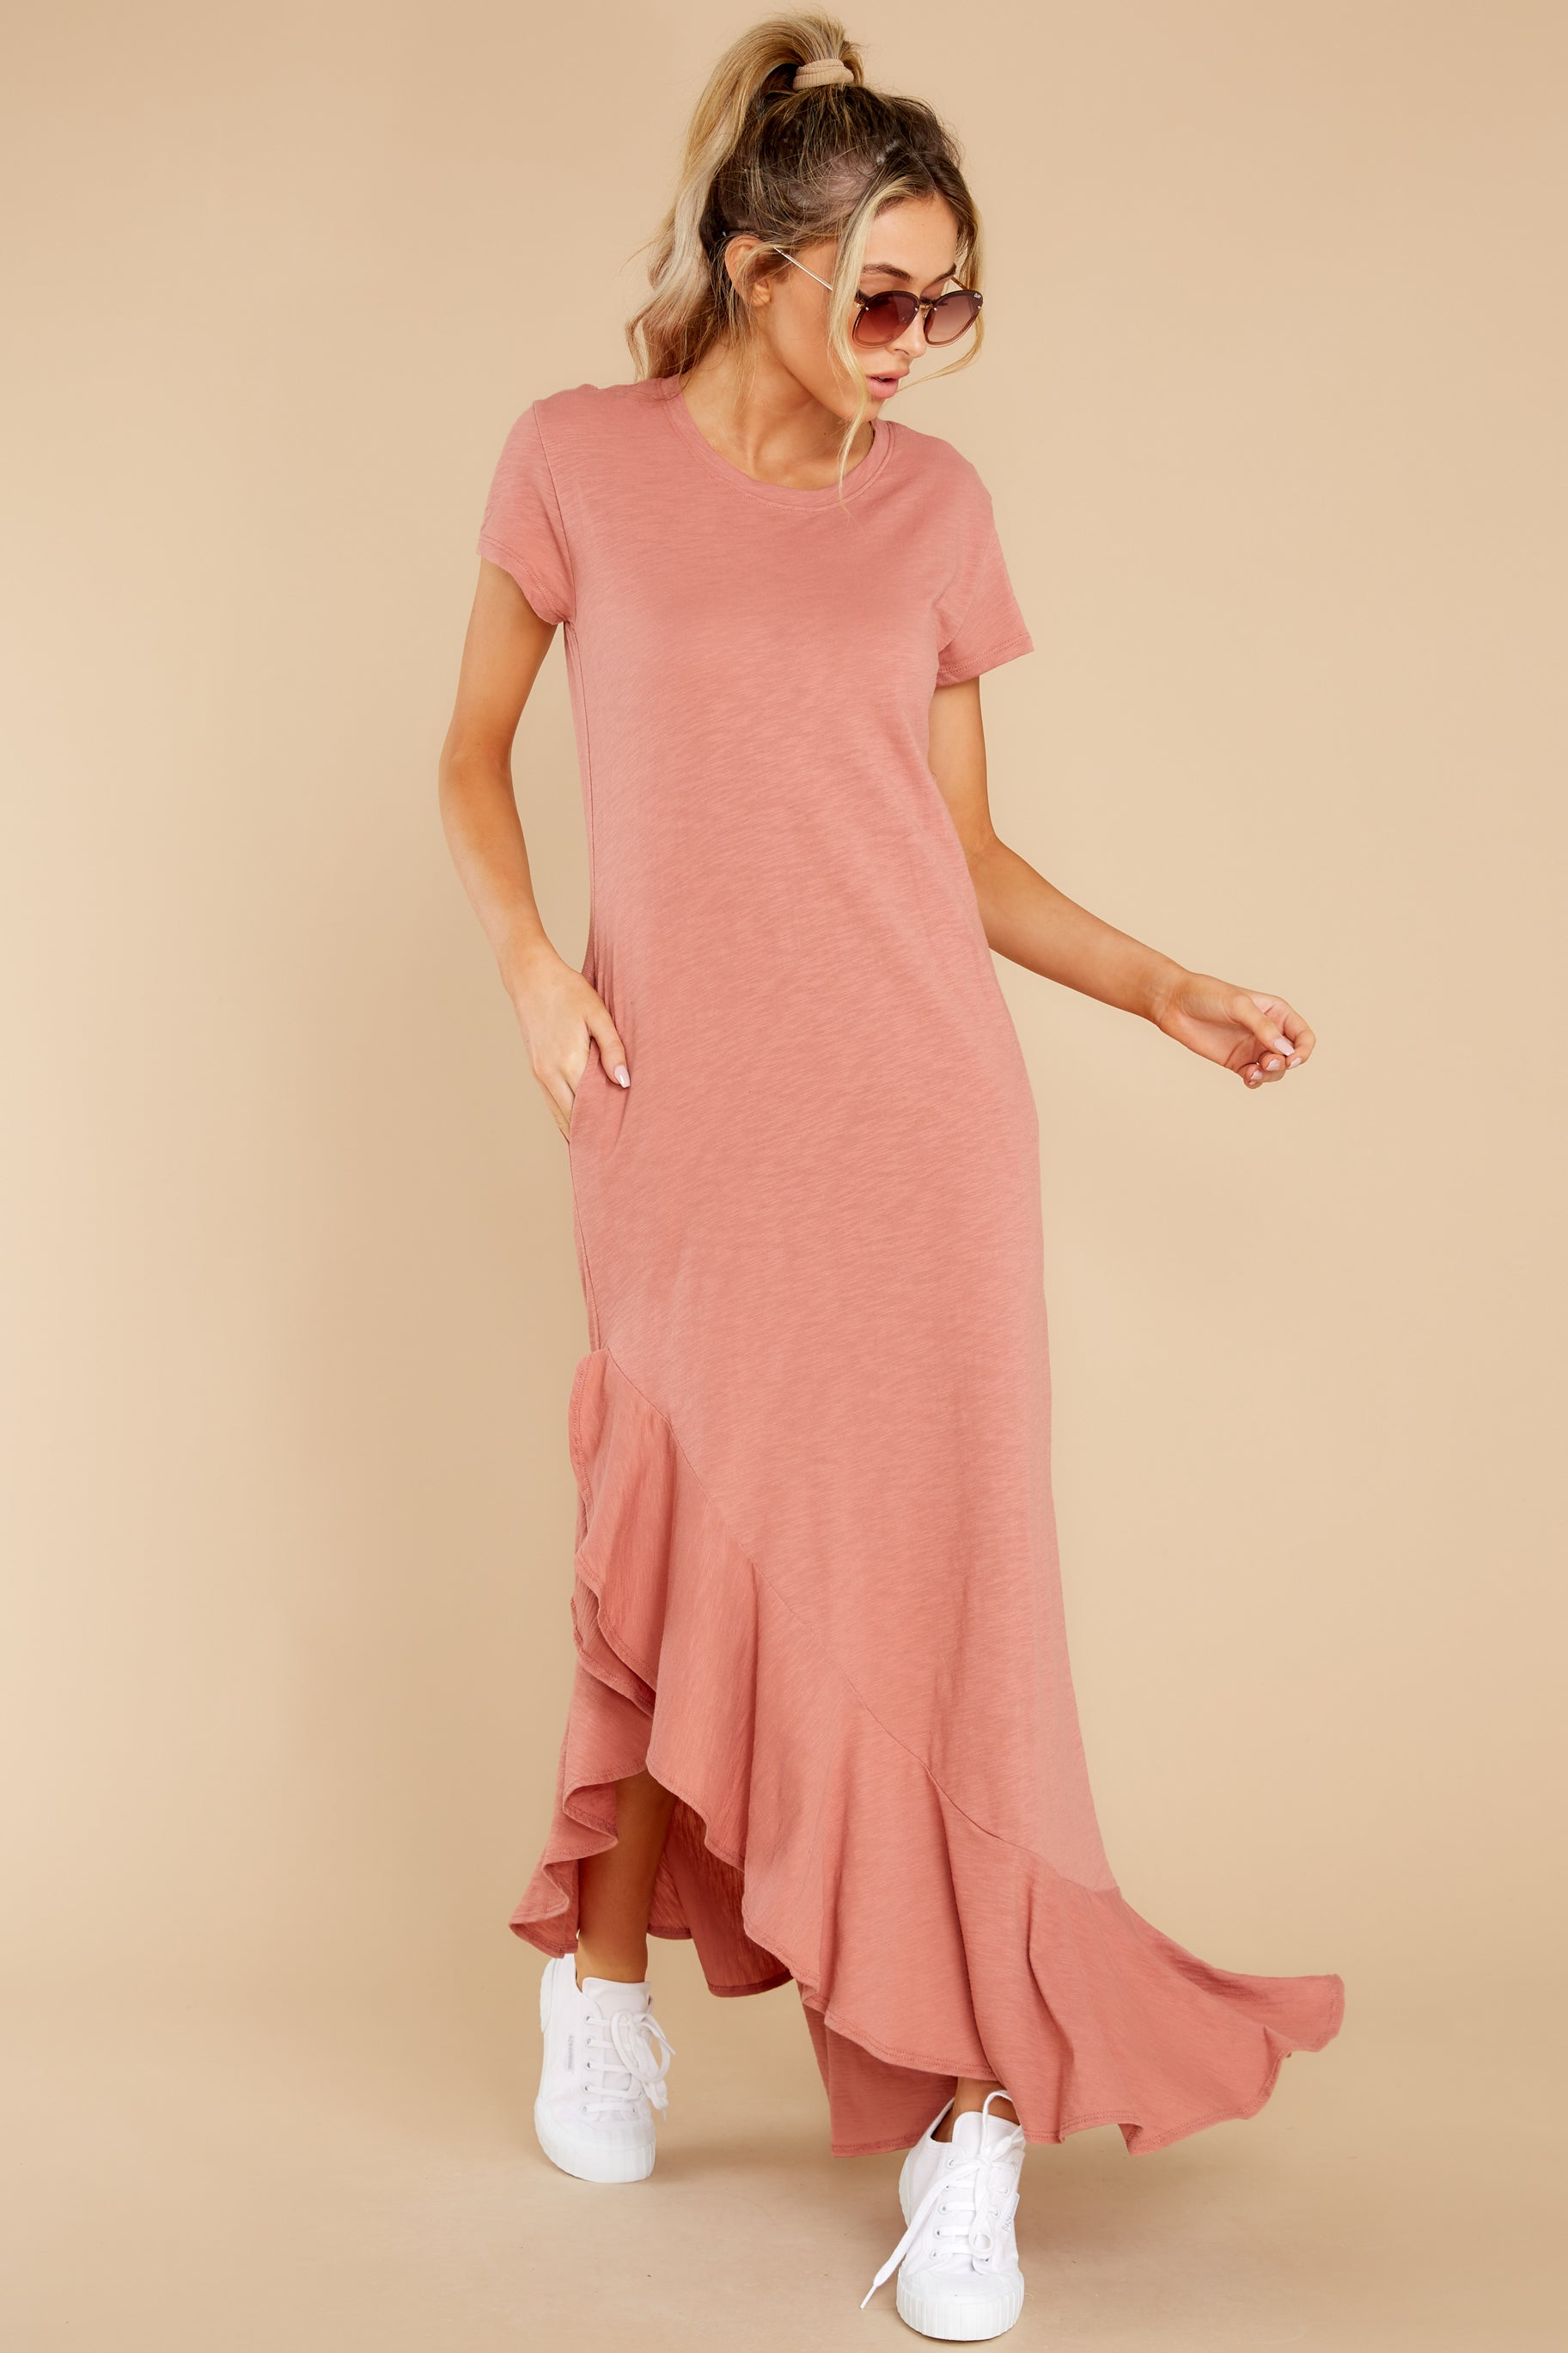 6 Need It All Rose Pink Maxi Dress at reddress.com